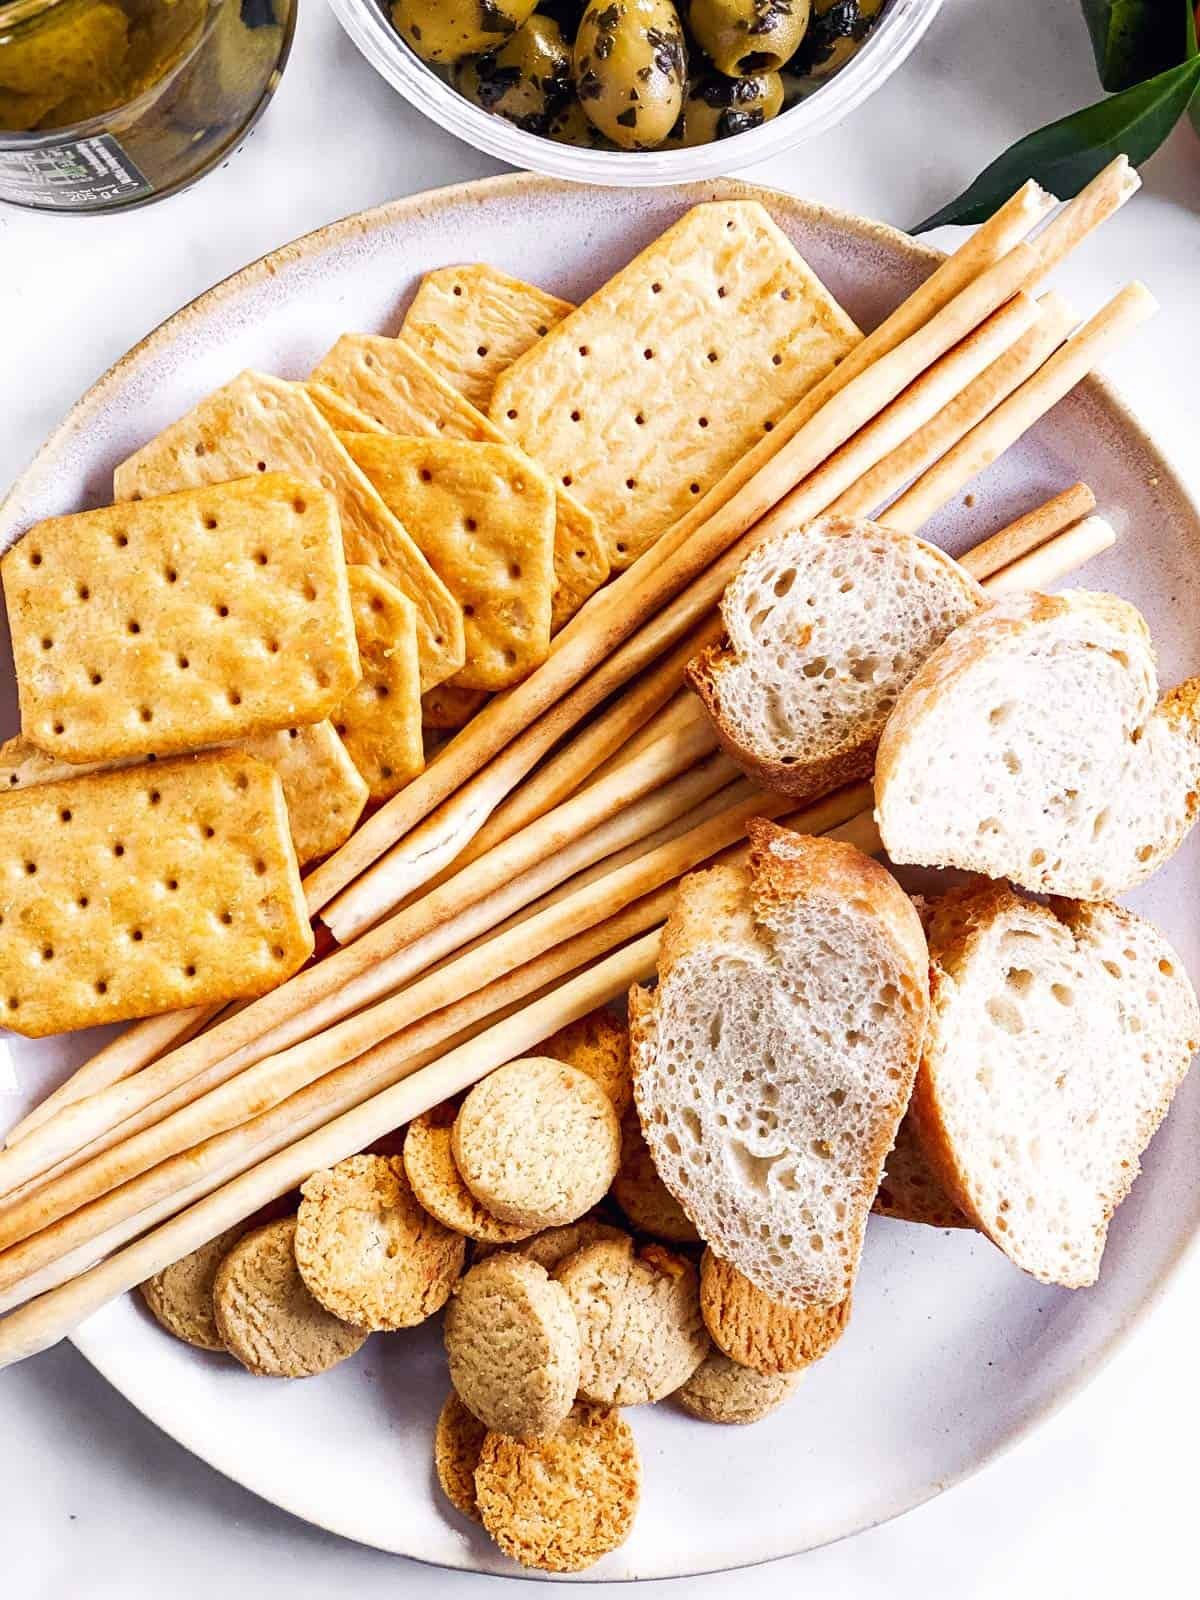 several crackers and sliced baguette on white plate